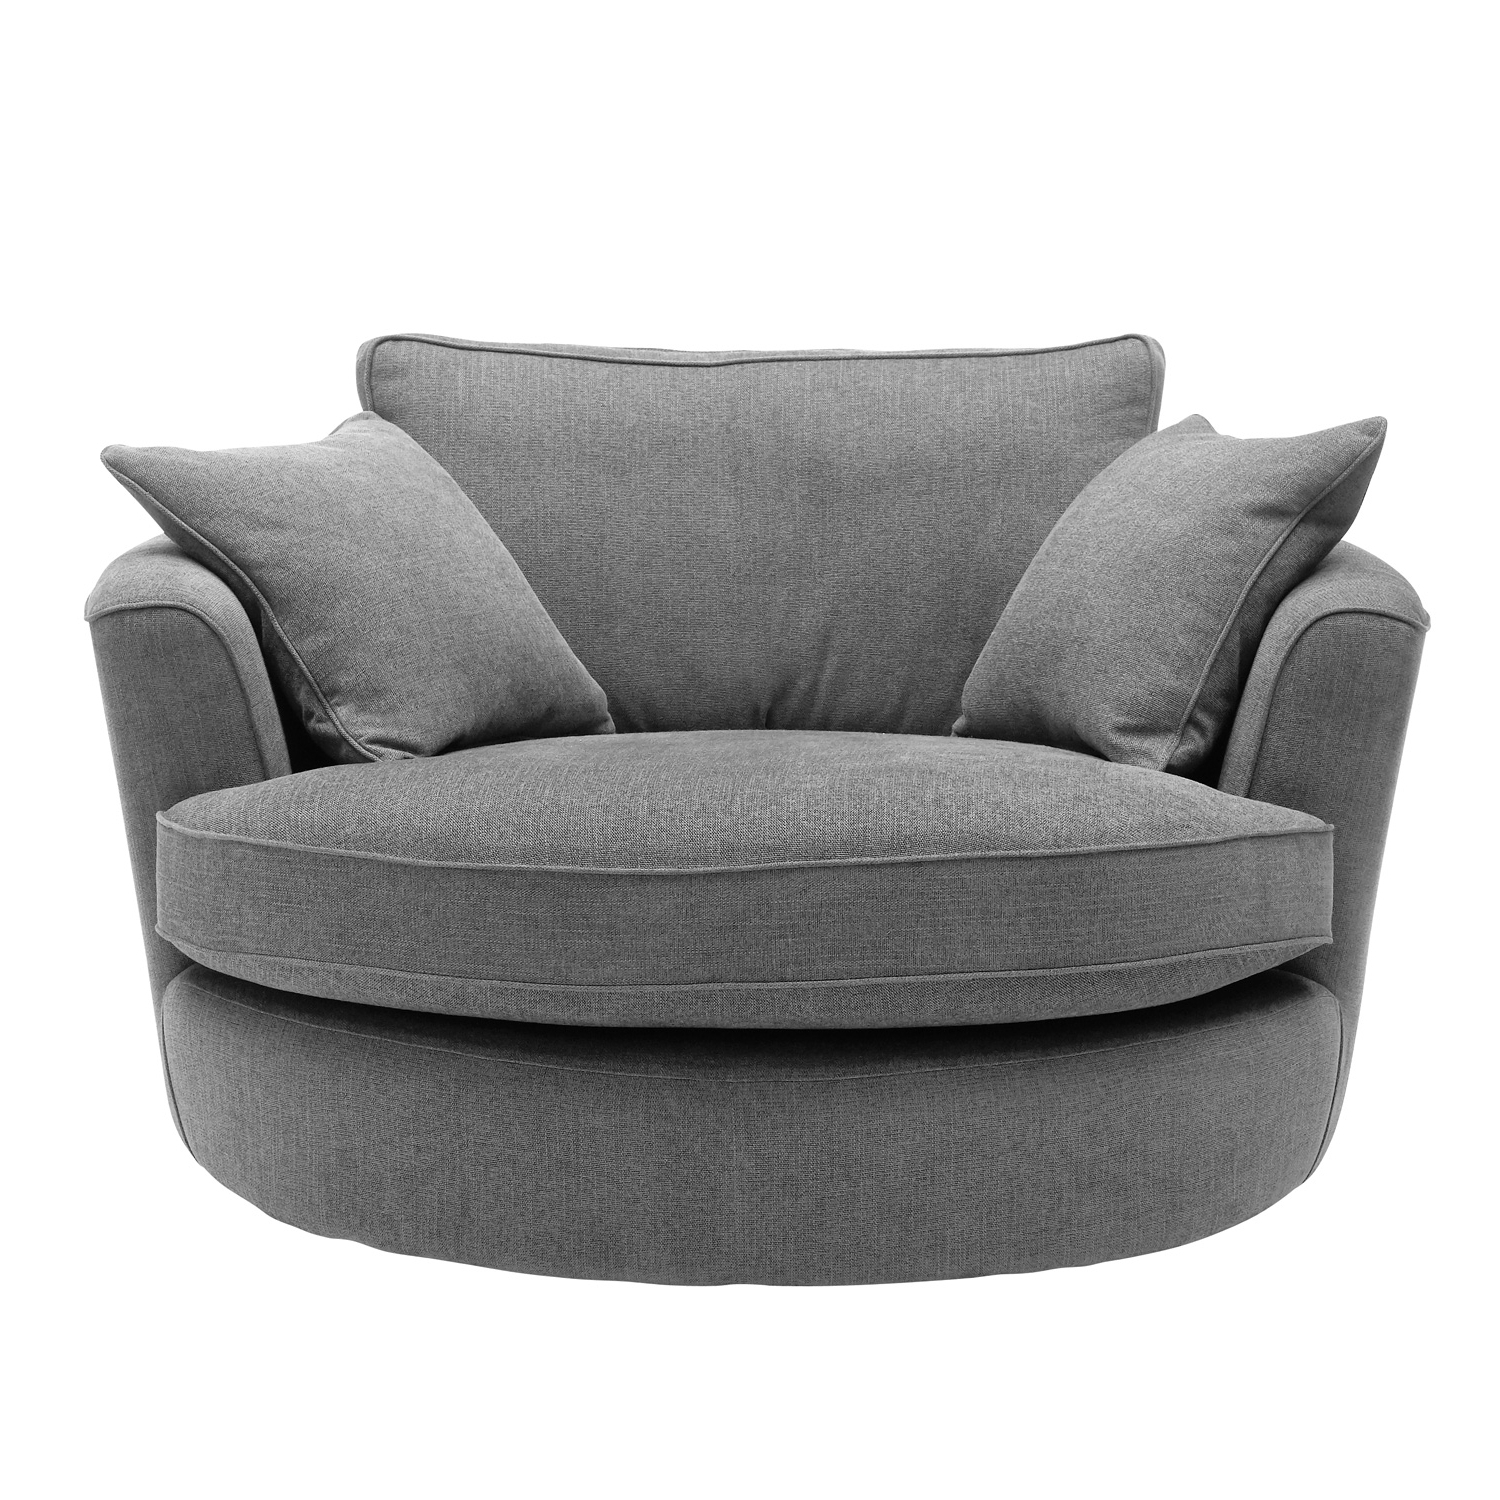 Round Sofa Chairs Regarding Newest Room Sets Gray Couch Arrangement Dark Green Velvet Round For Curved (View 8 of 20)